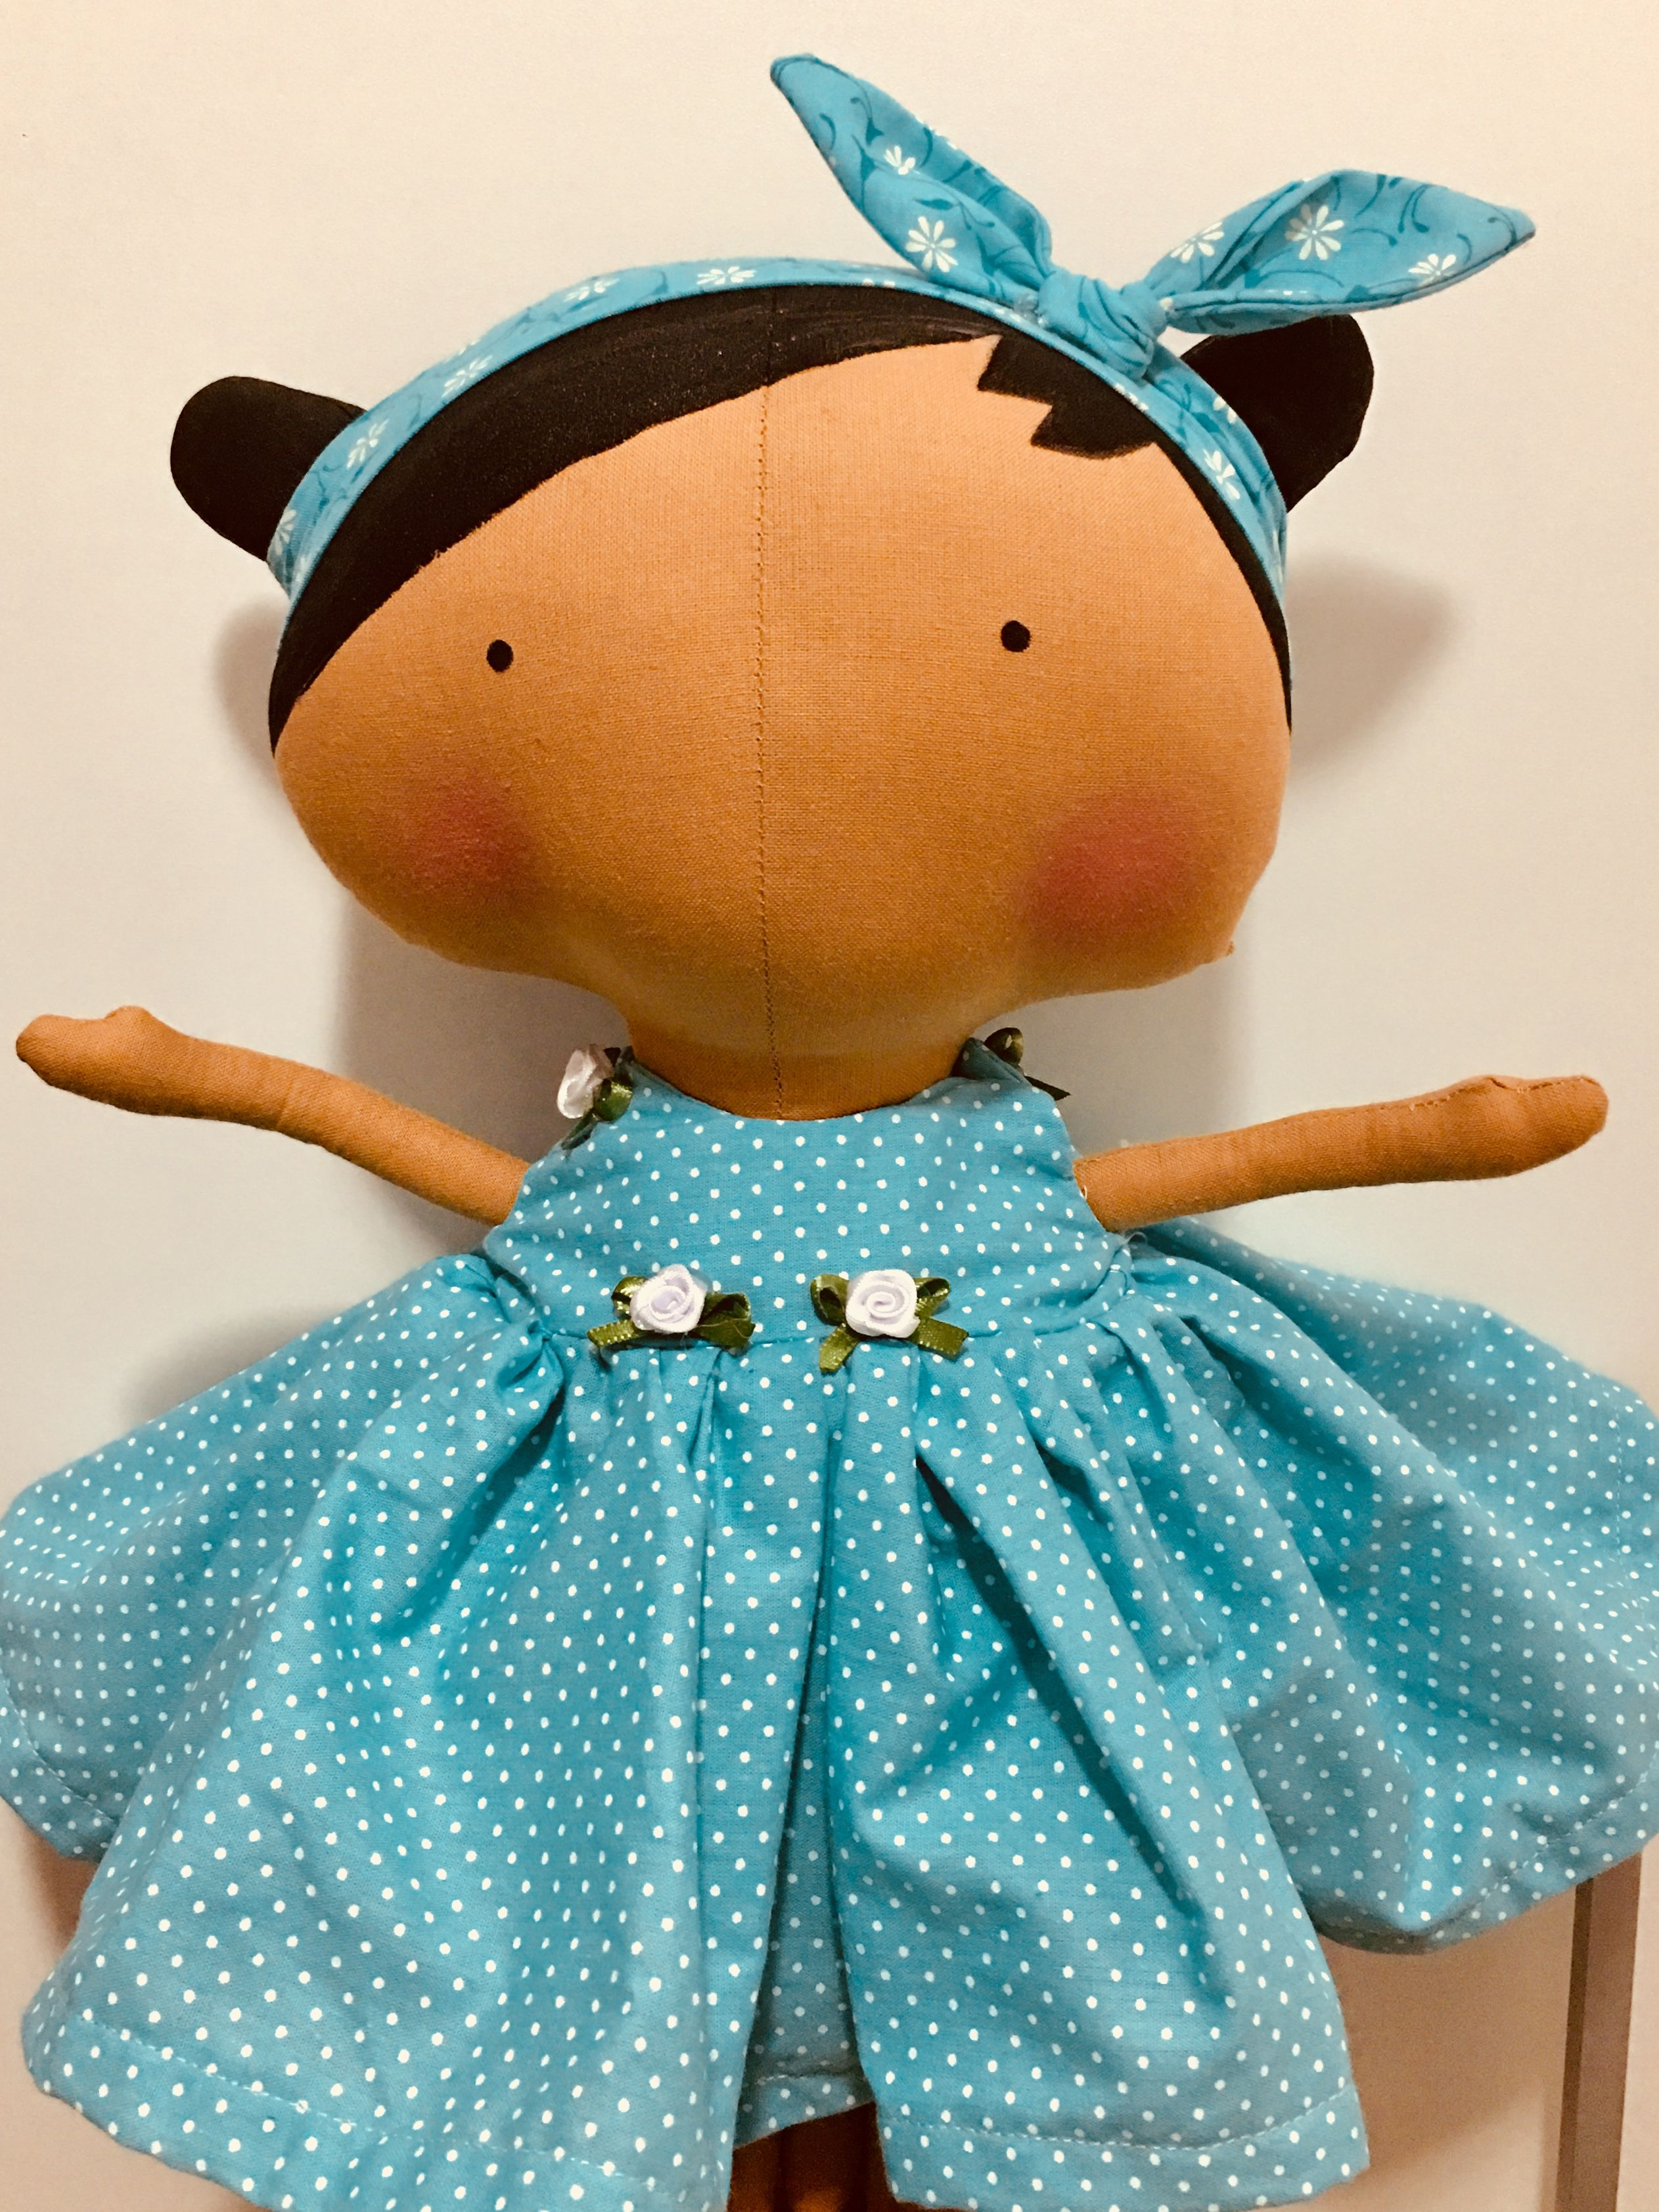 Pin by Cin on Doll and stuffed animal sewing patterns